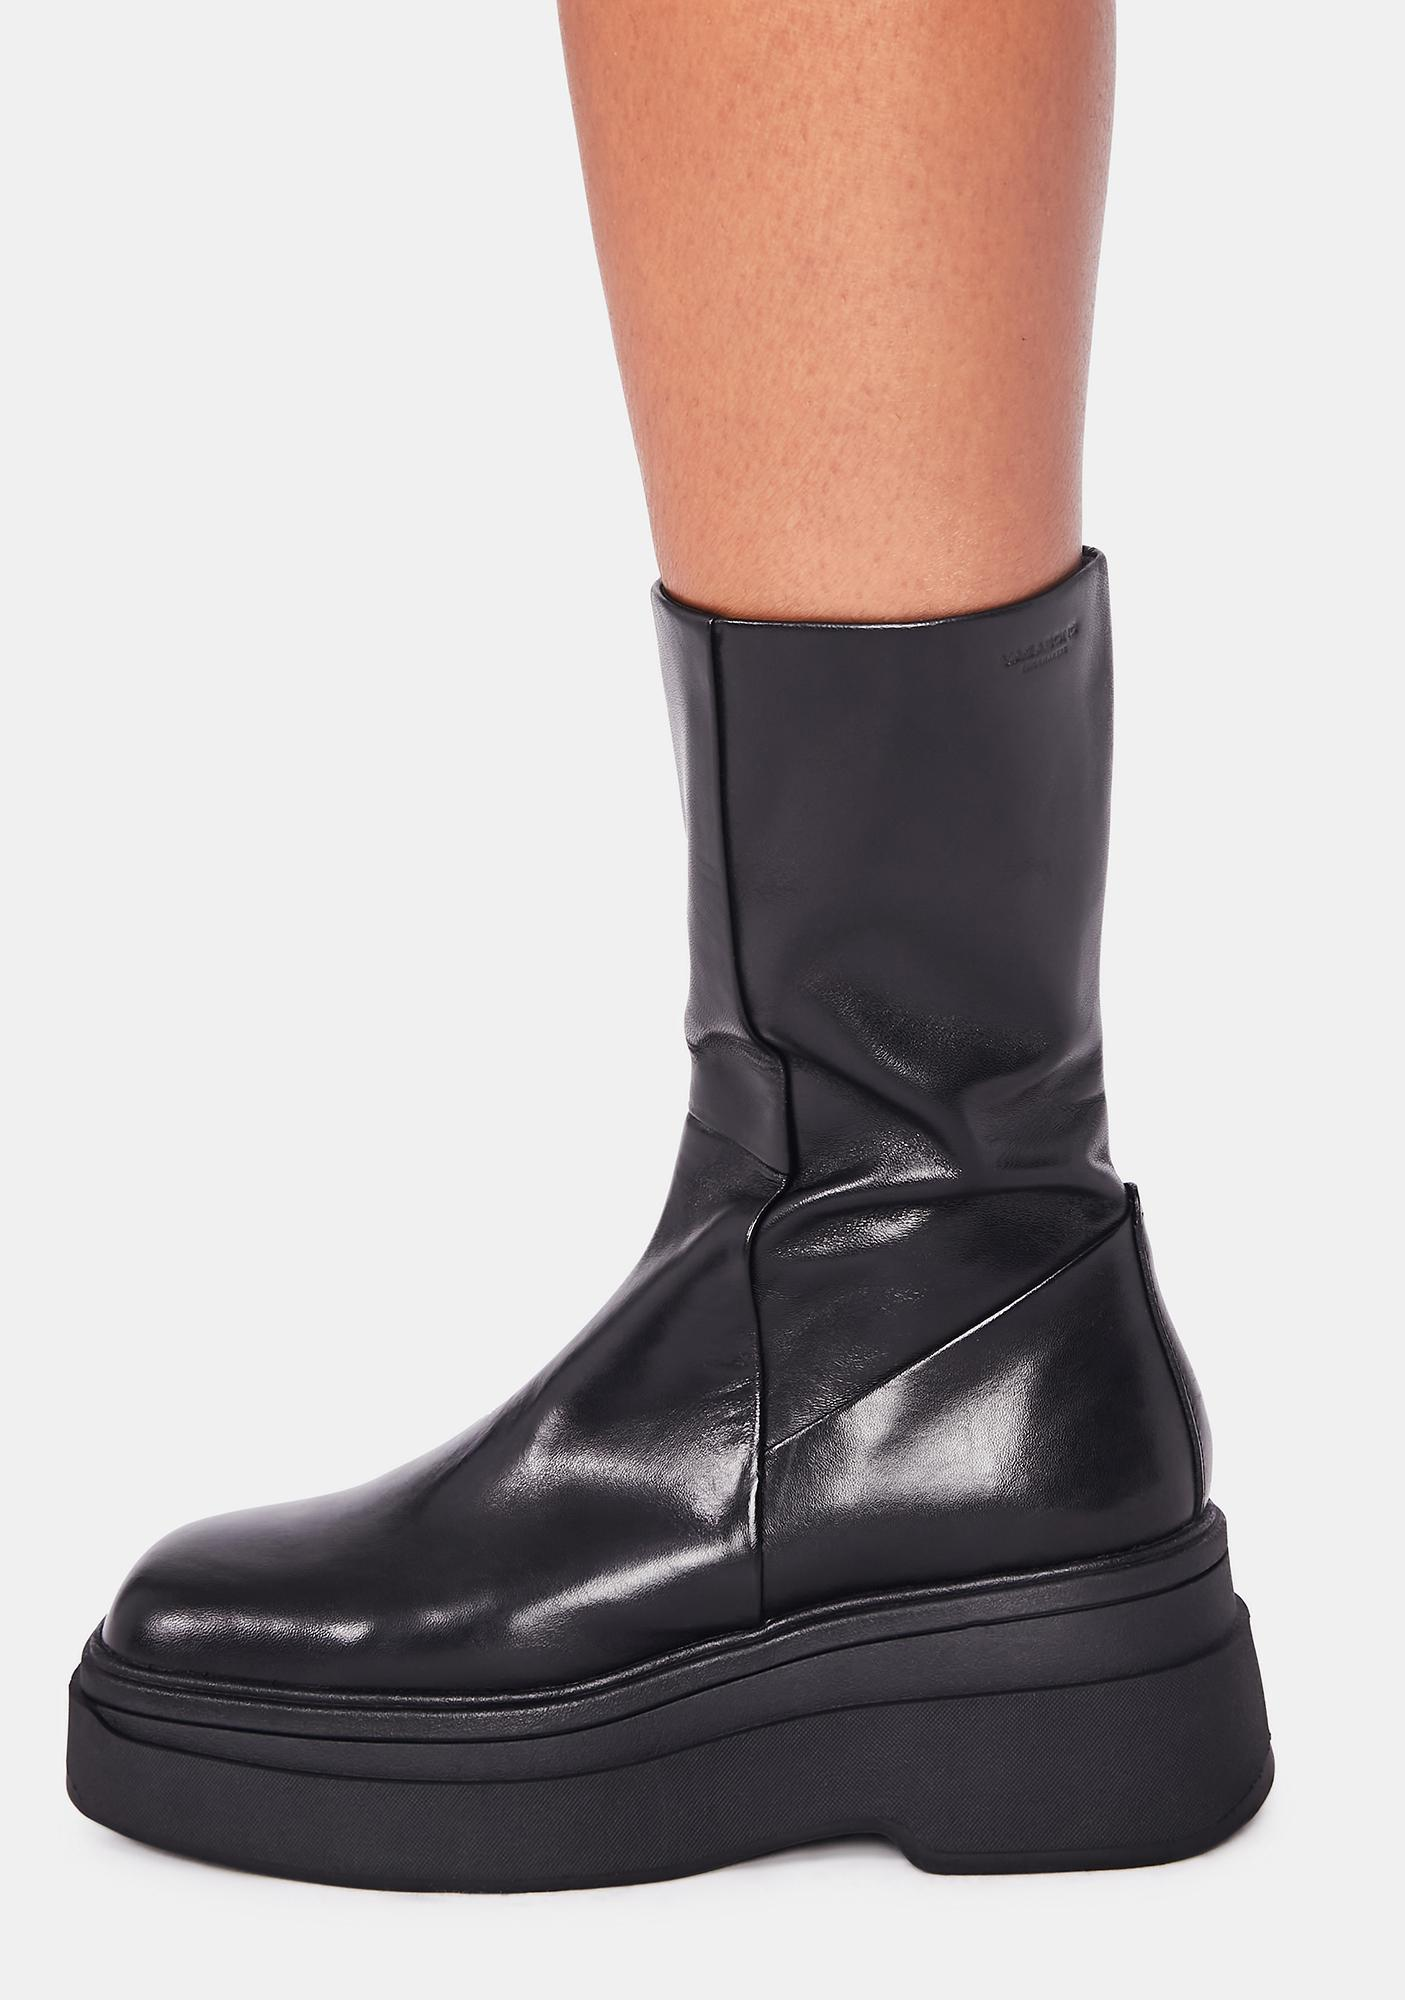 VAGABOND SHOEMAKERS Carla Leather Mid-High Boots